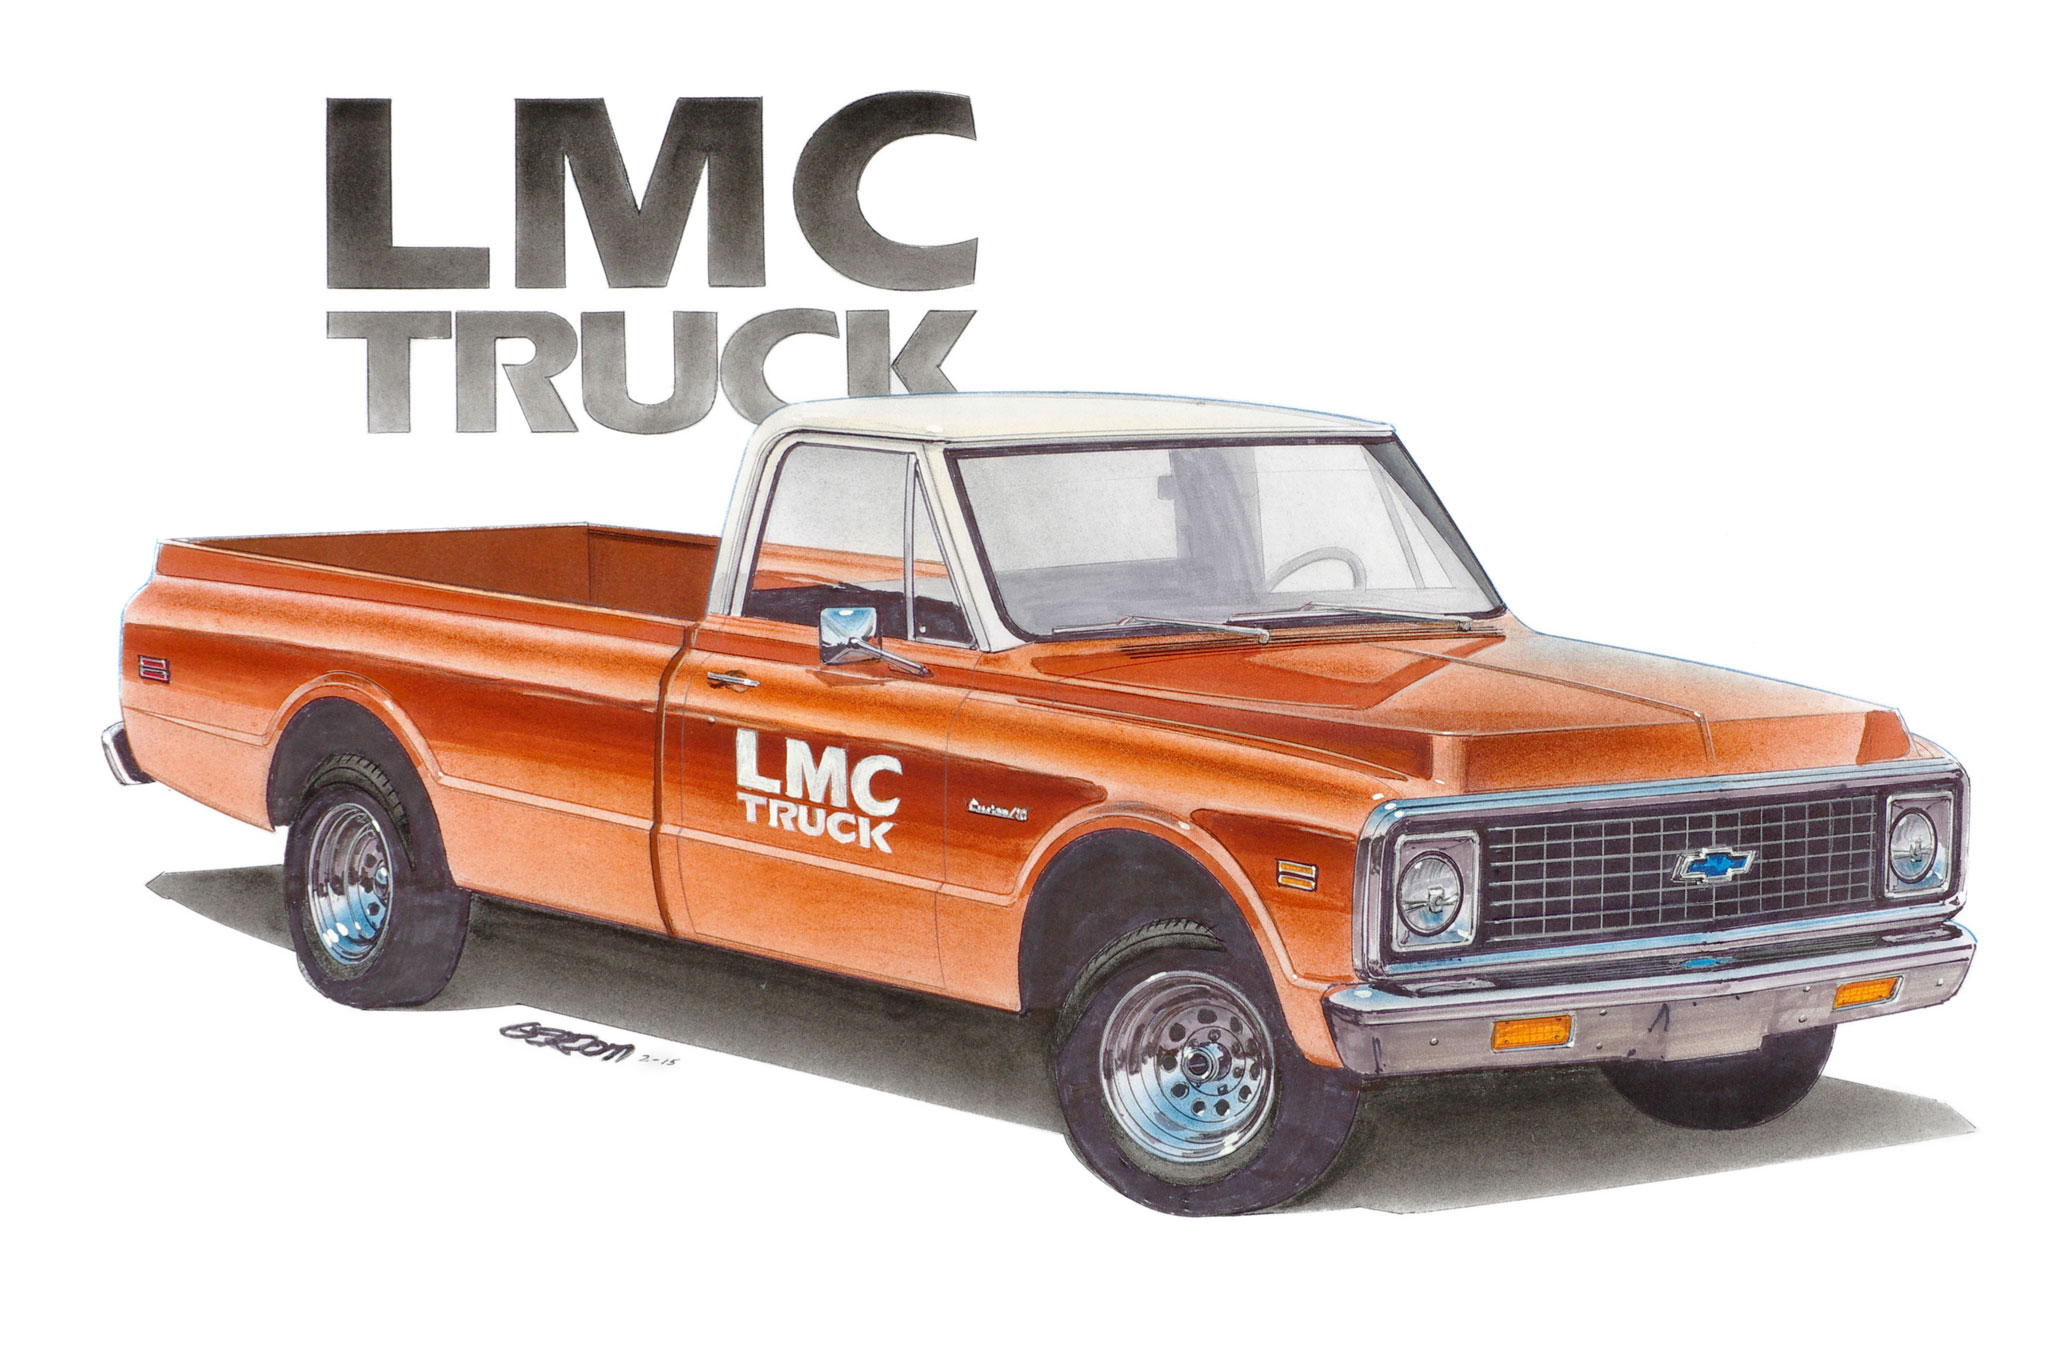 Ready Aim Name Lmc Truck 1972 Chevrolet K10 Naming Contest